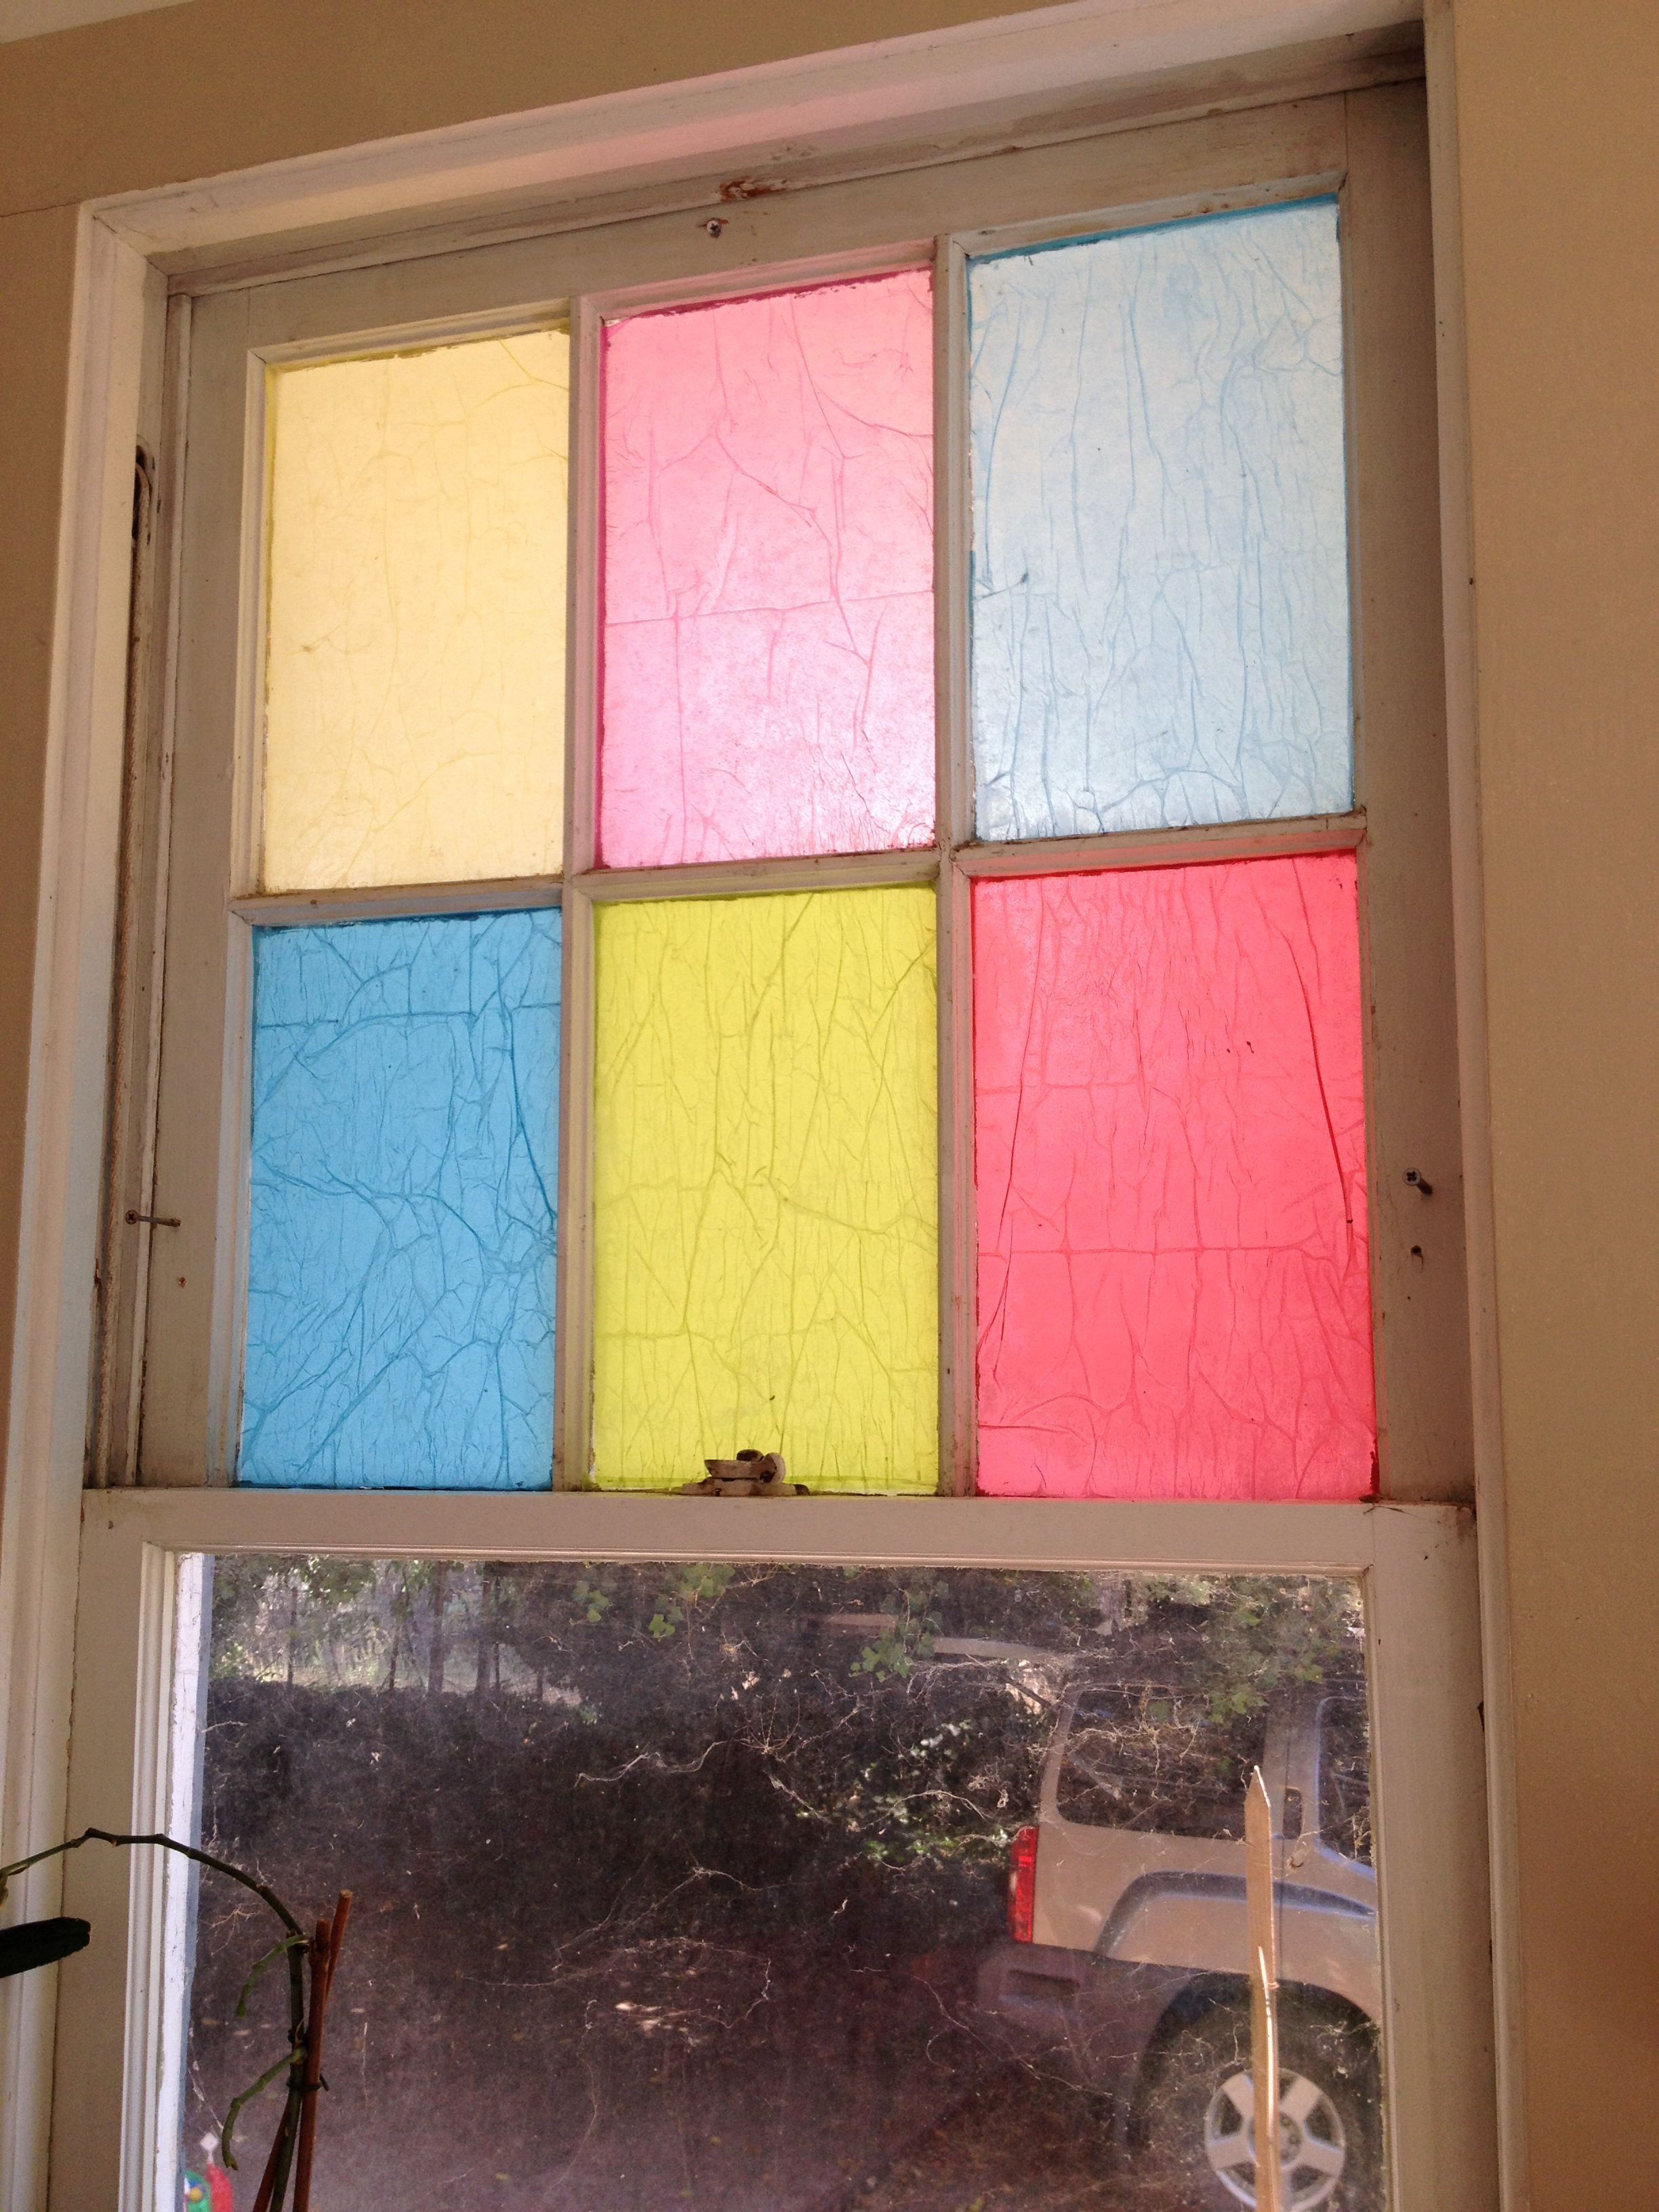 Decoupage tissue paper on windows for a stained glass effect